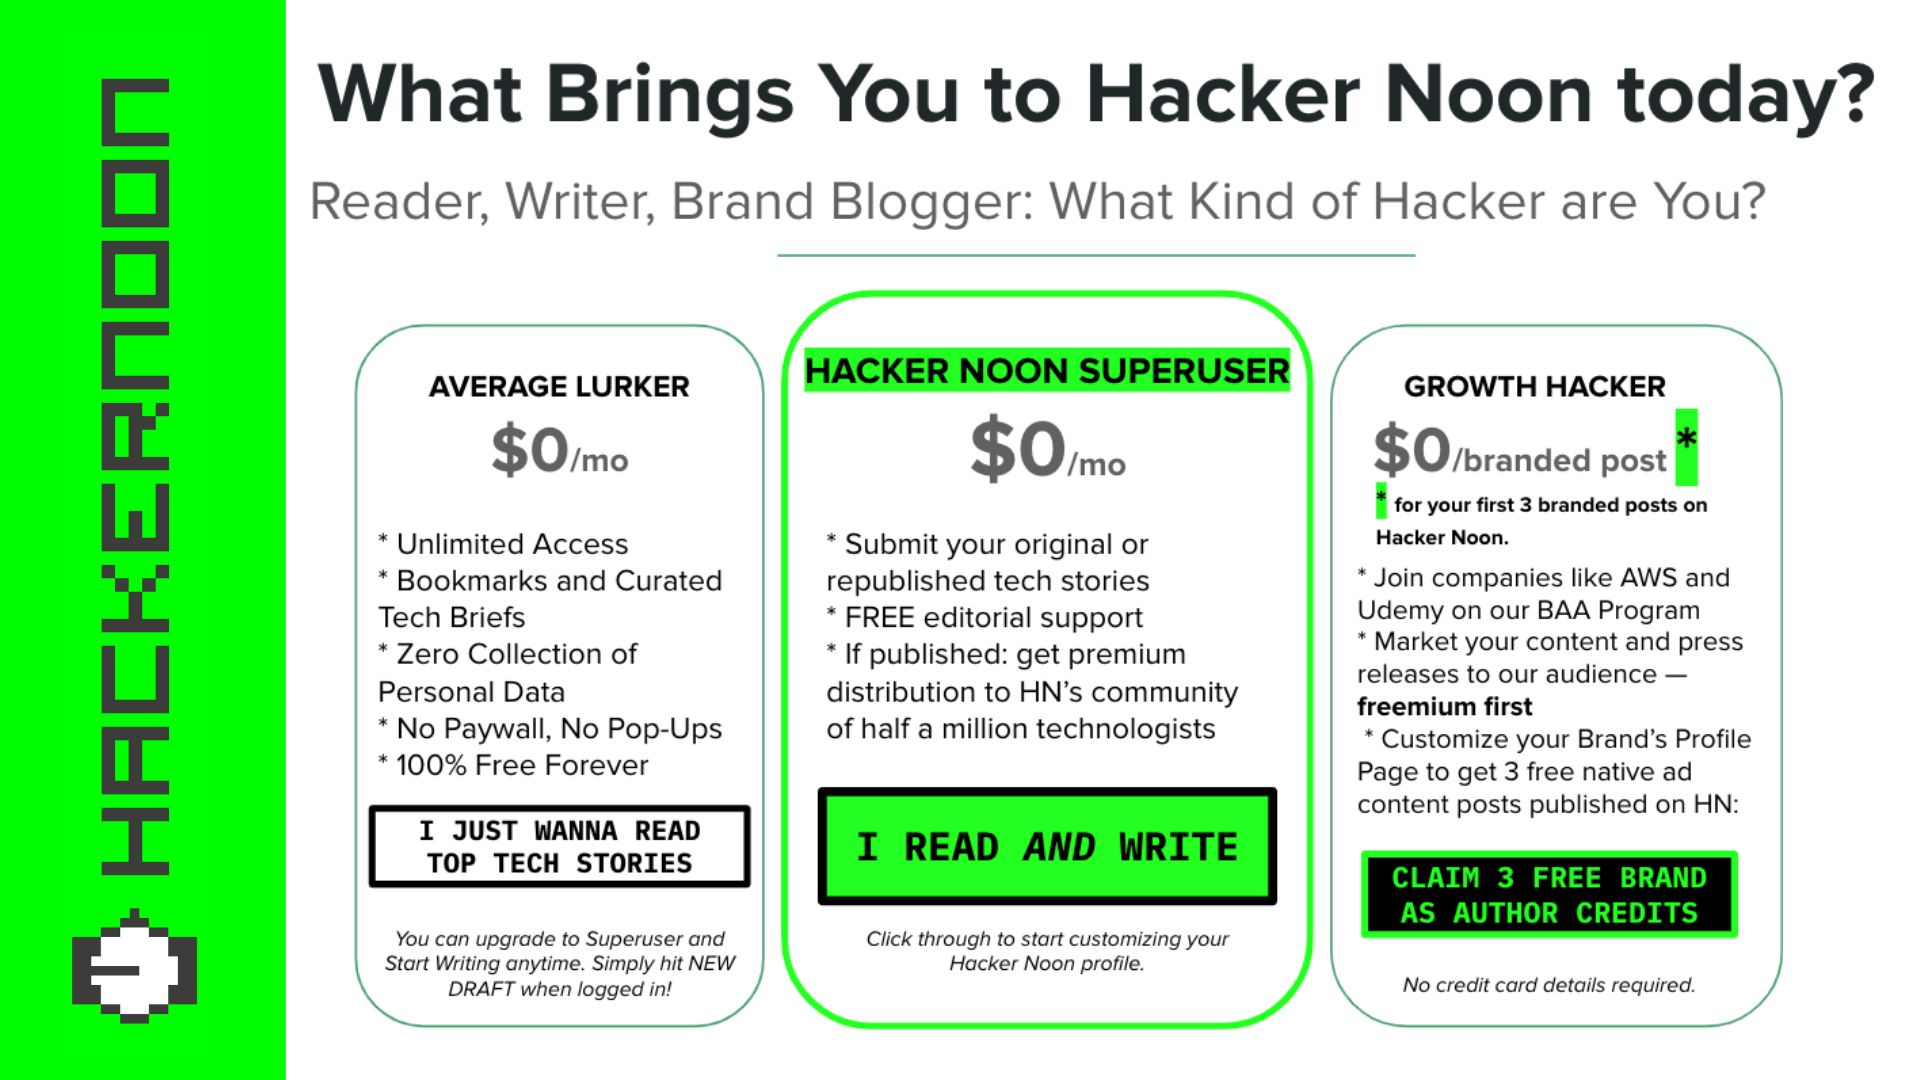 /4-facts-you-should-know-about-republishing-content-on-hacker-noon-im63ua6 feature image